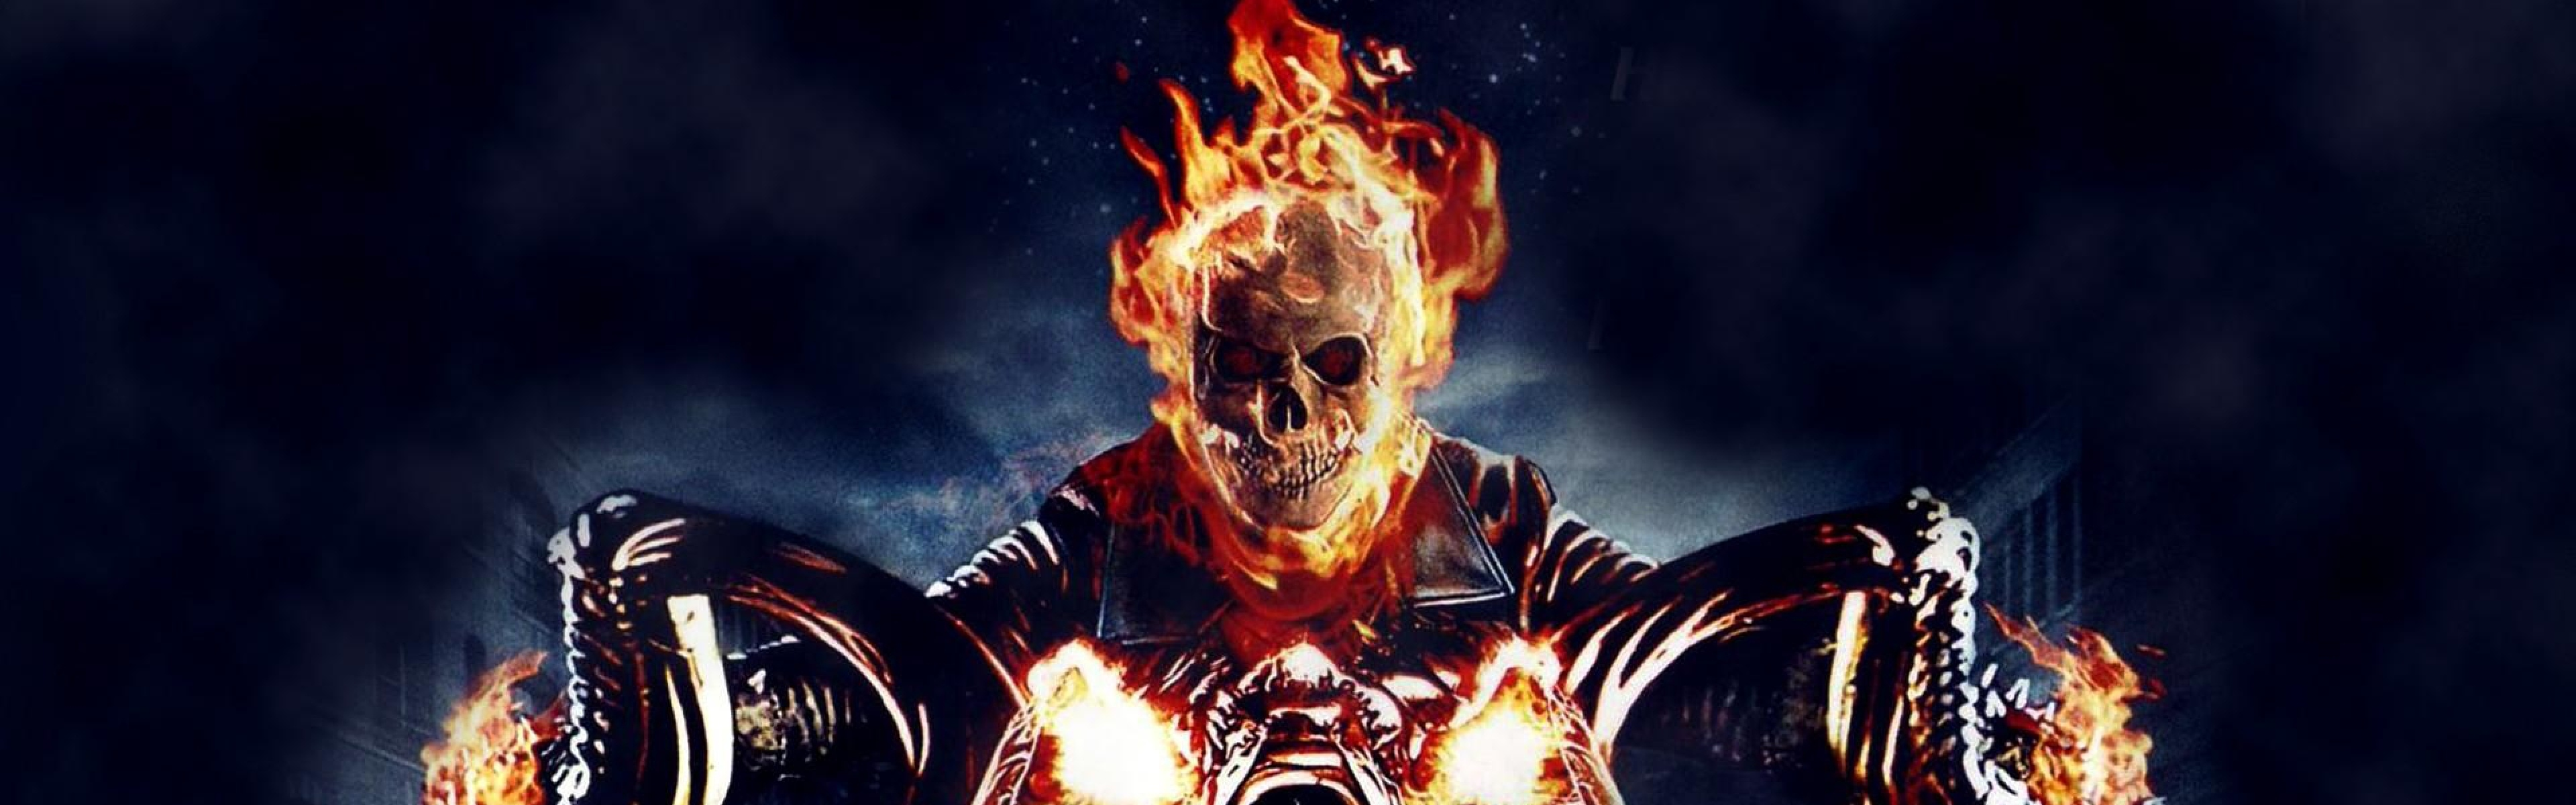 ghost rider skull wallpaper wallpapersafari